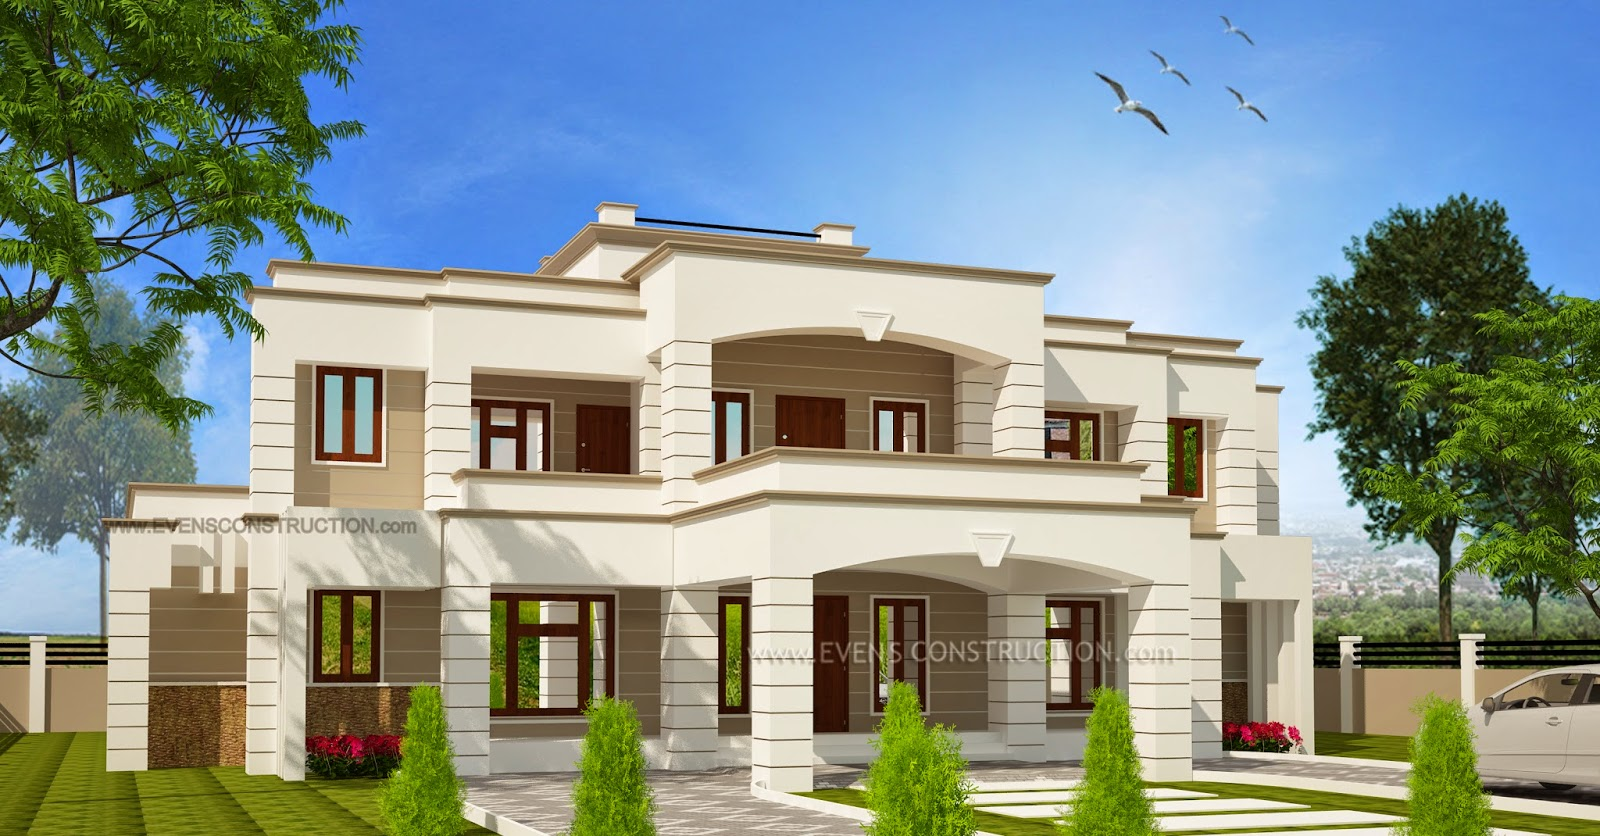 Evens Construction Pvt Ltd 5 Bhk Super Luxury Home Elevation